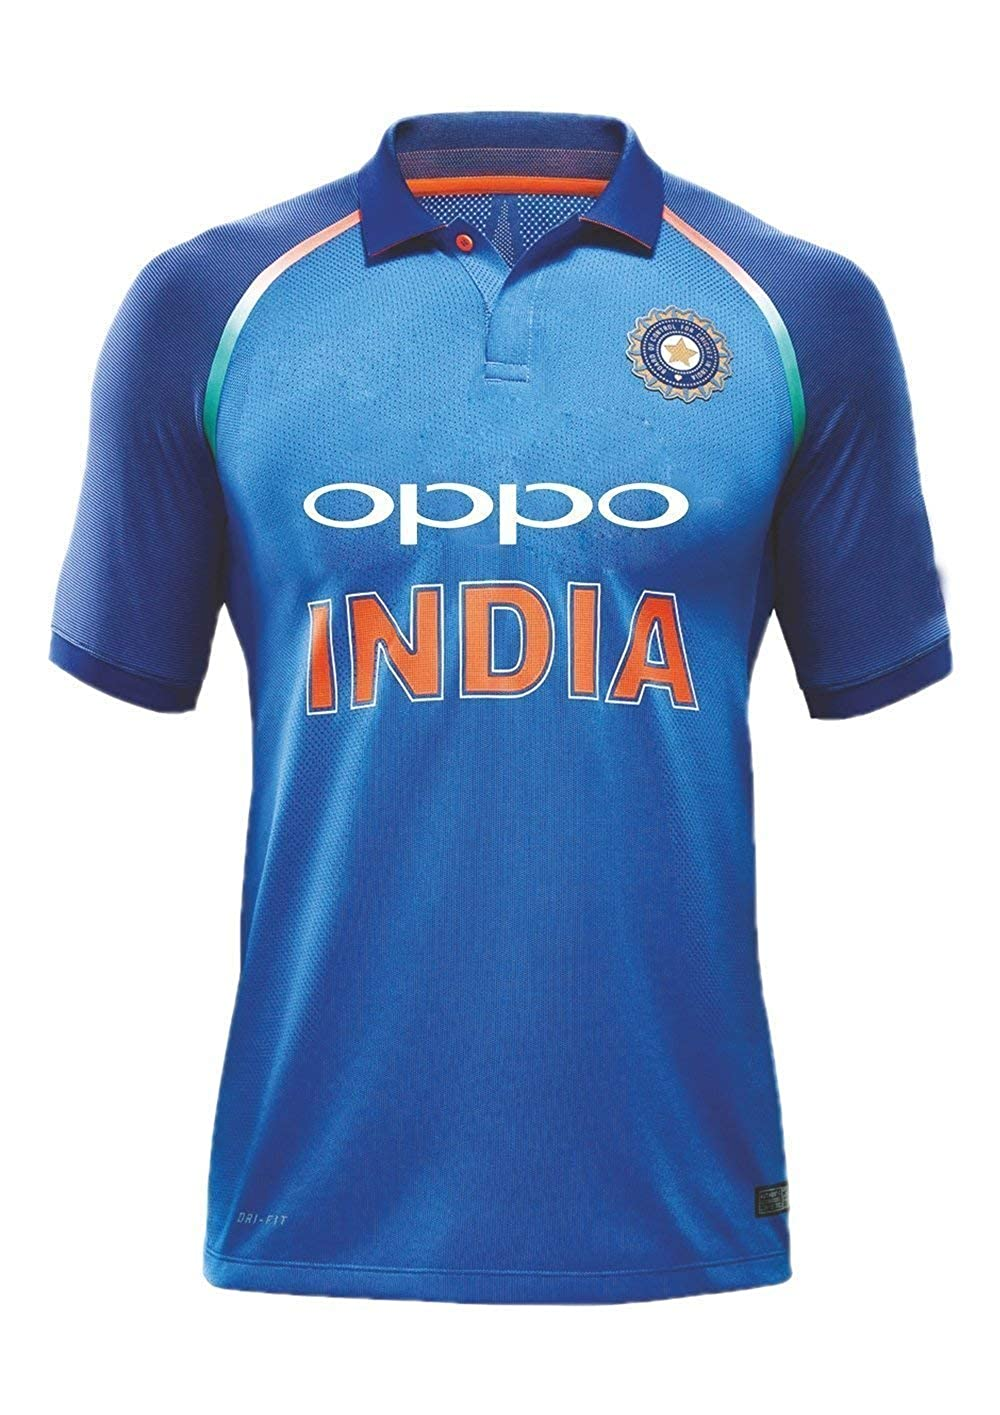 abfce22a2a4 Amazon.com  KD Team India ODI Cricket Supporter Oppo Jersey 2018-2019 -  Kids to Adult  Books